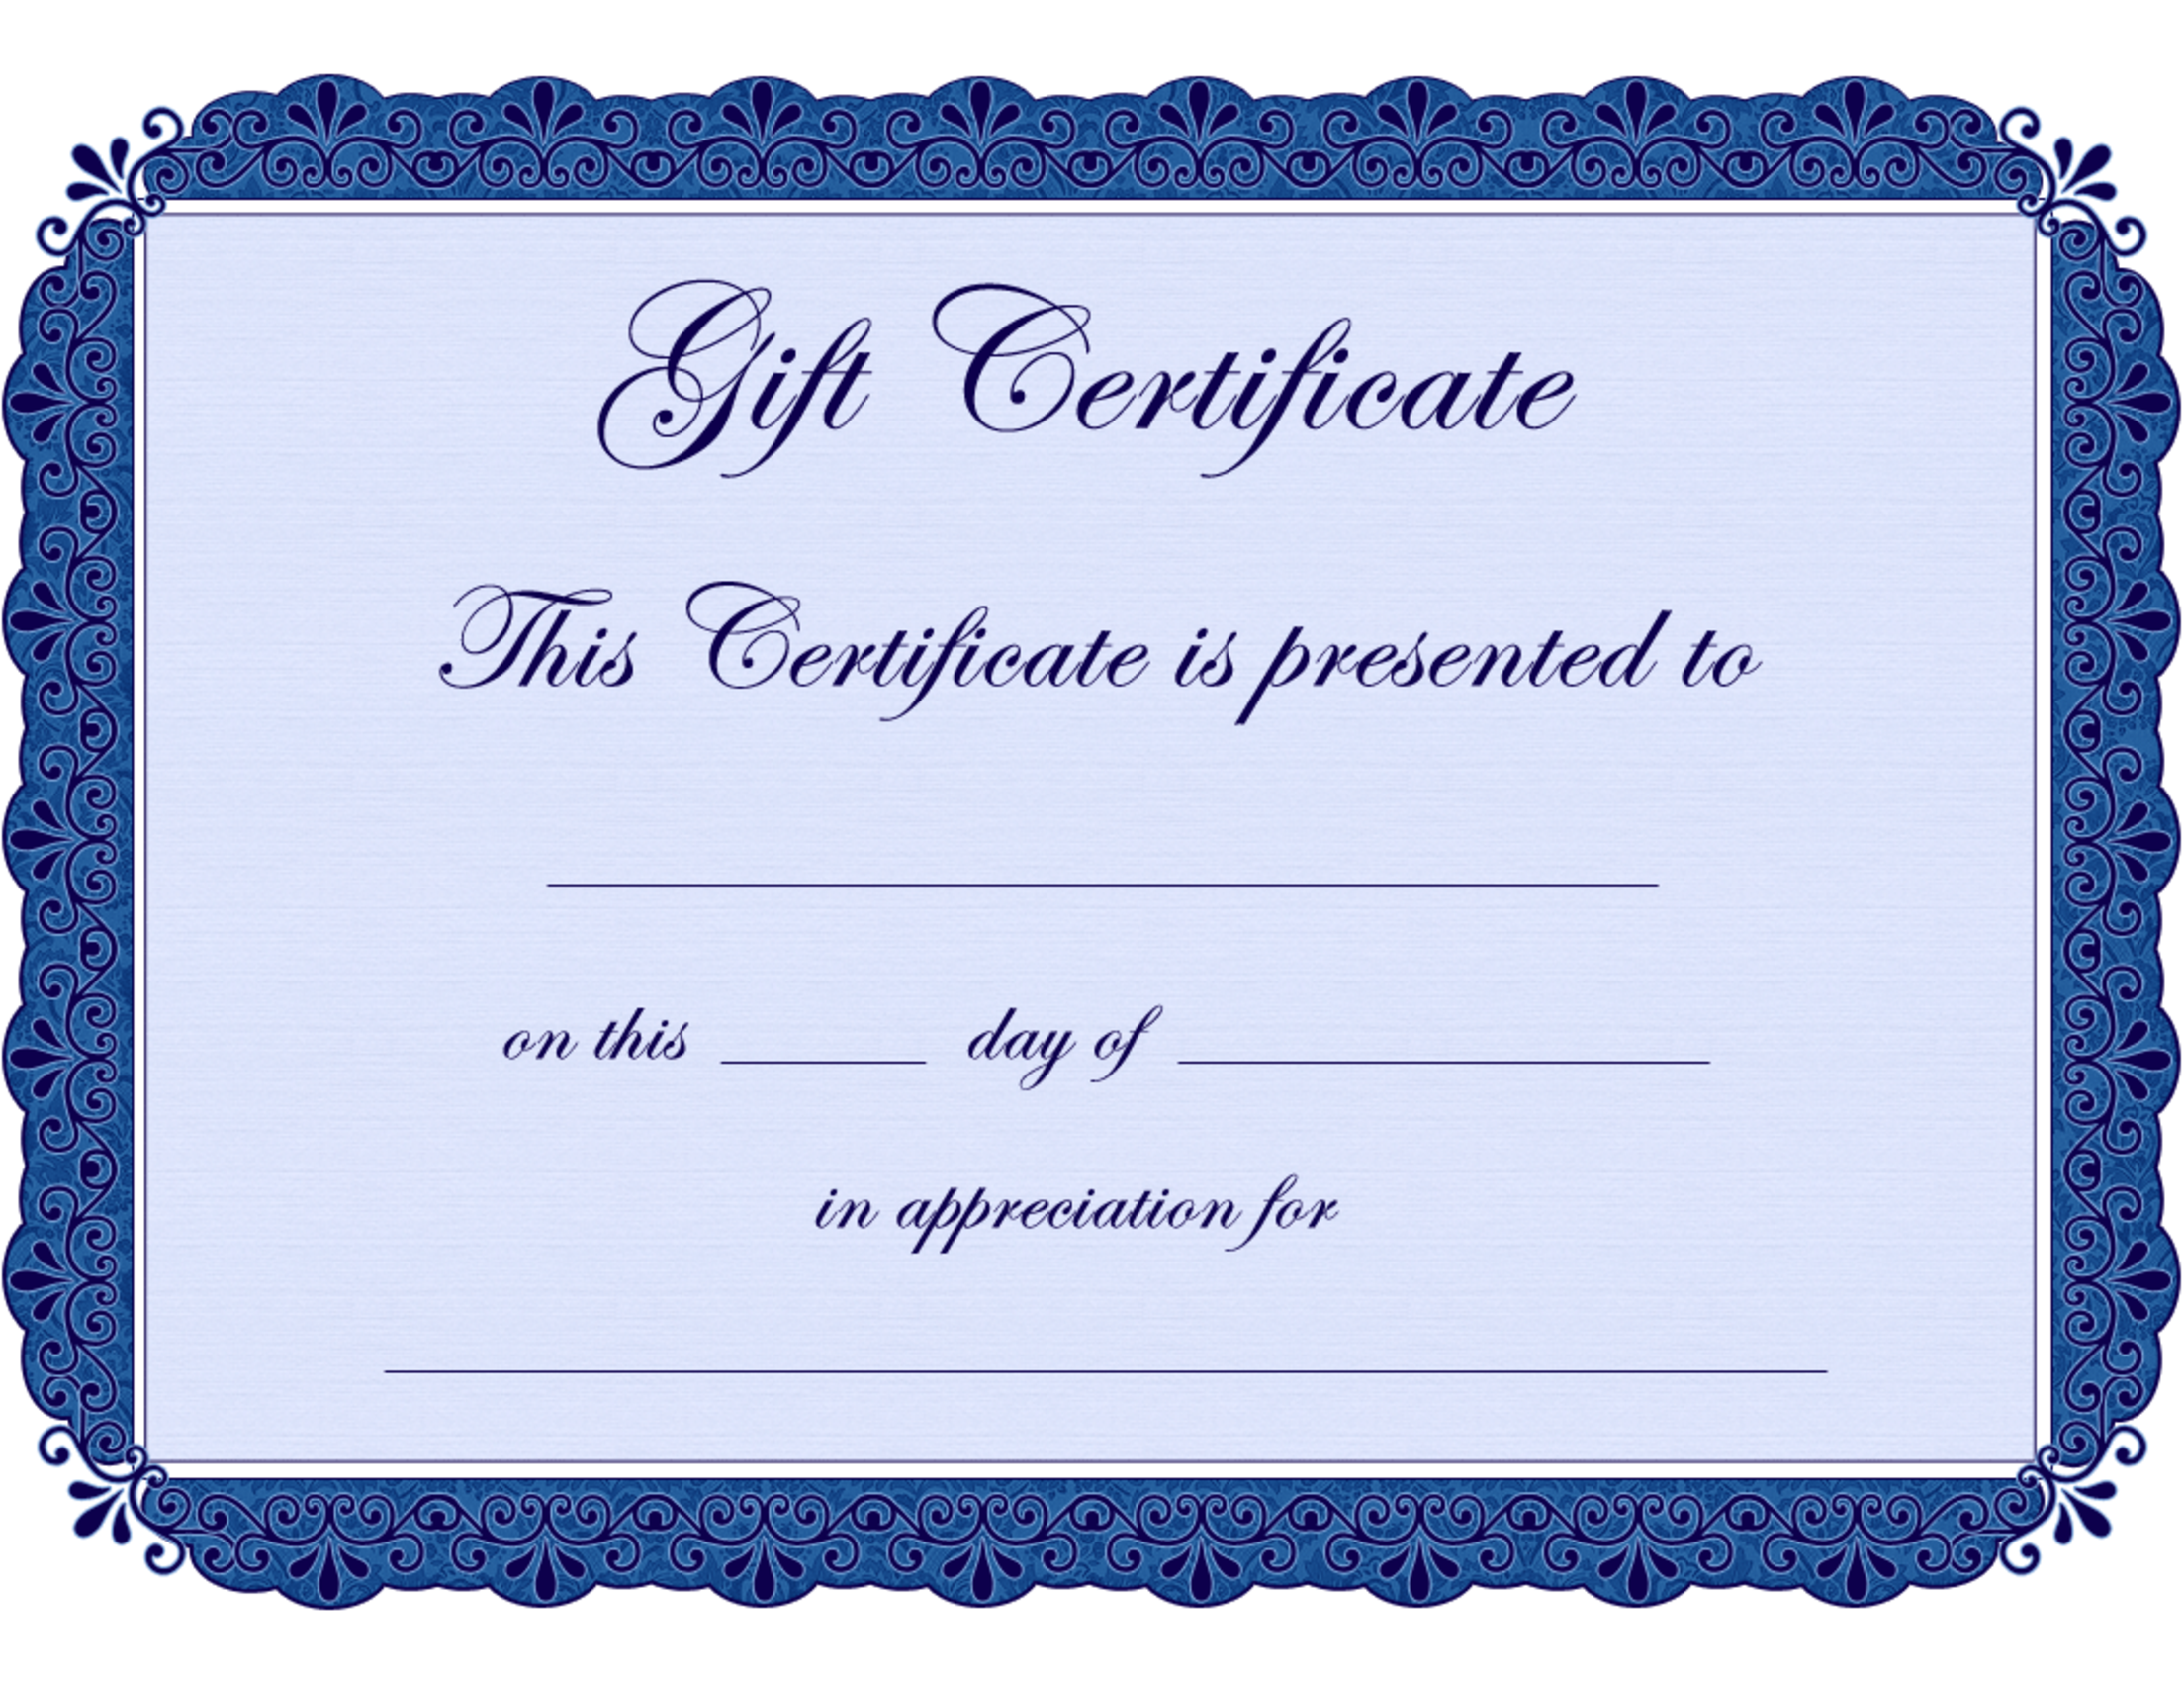 Printable babysitting coupon template clipart best generic gift printable babysitting coupon template clipart best generic gift certificates with pictures gifts blue yellow yadclub Images